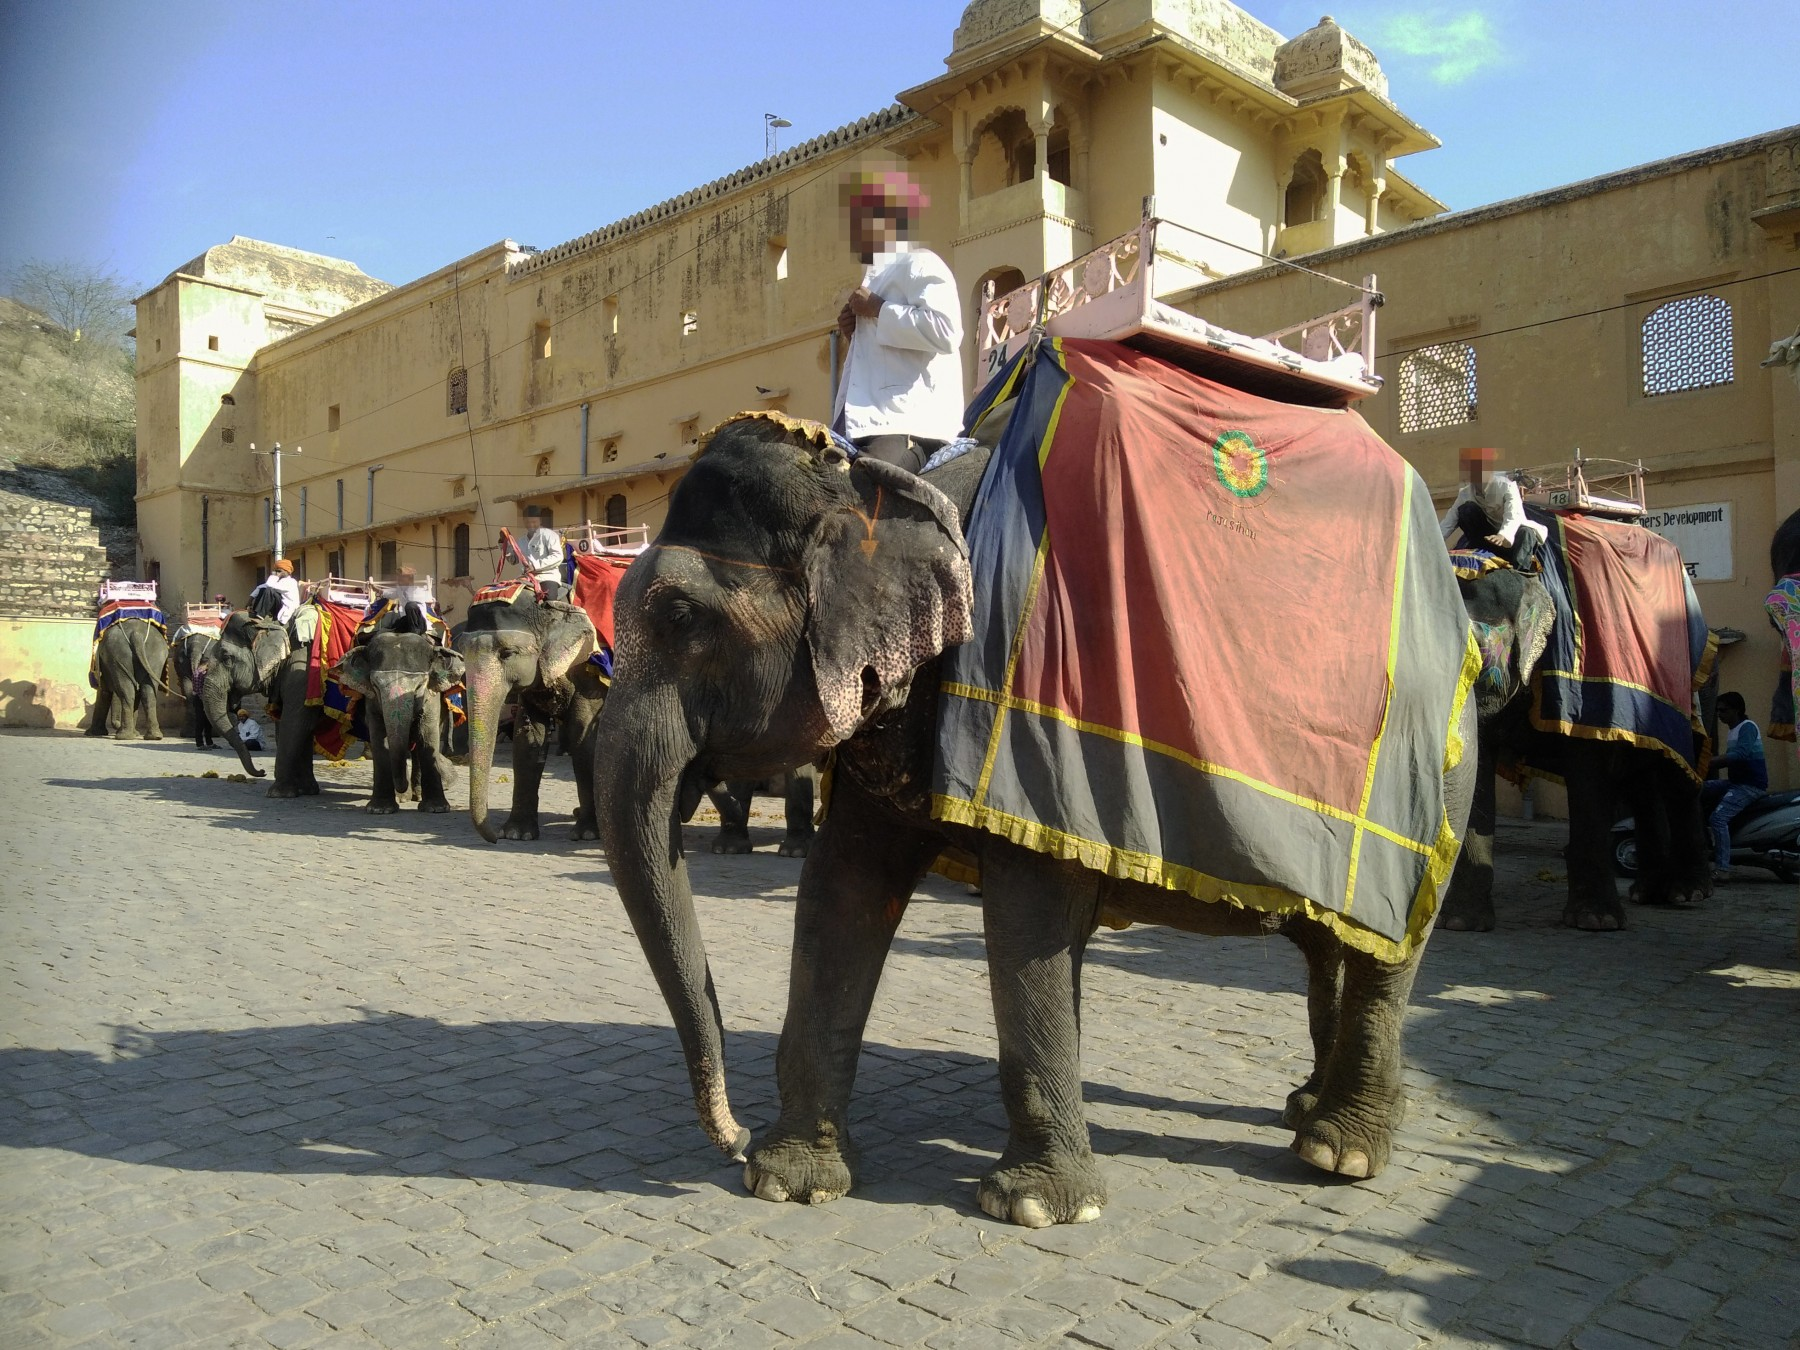 Elephants forced to give rides to tourists at Amer Fort in India.